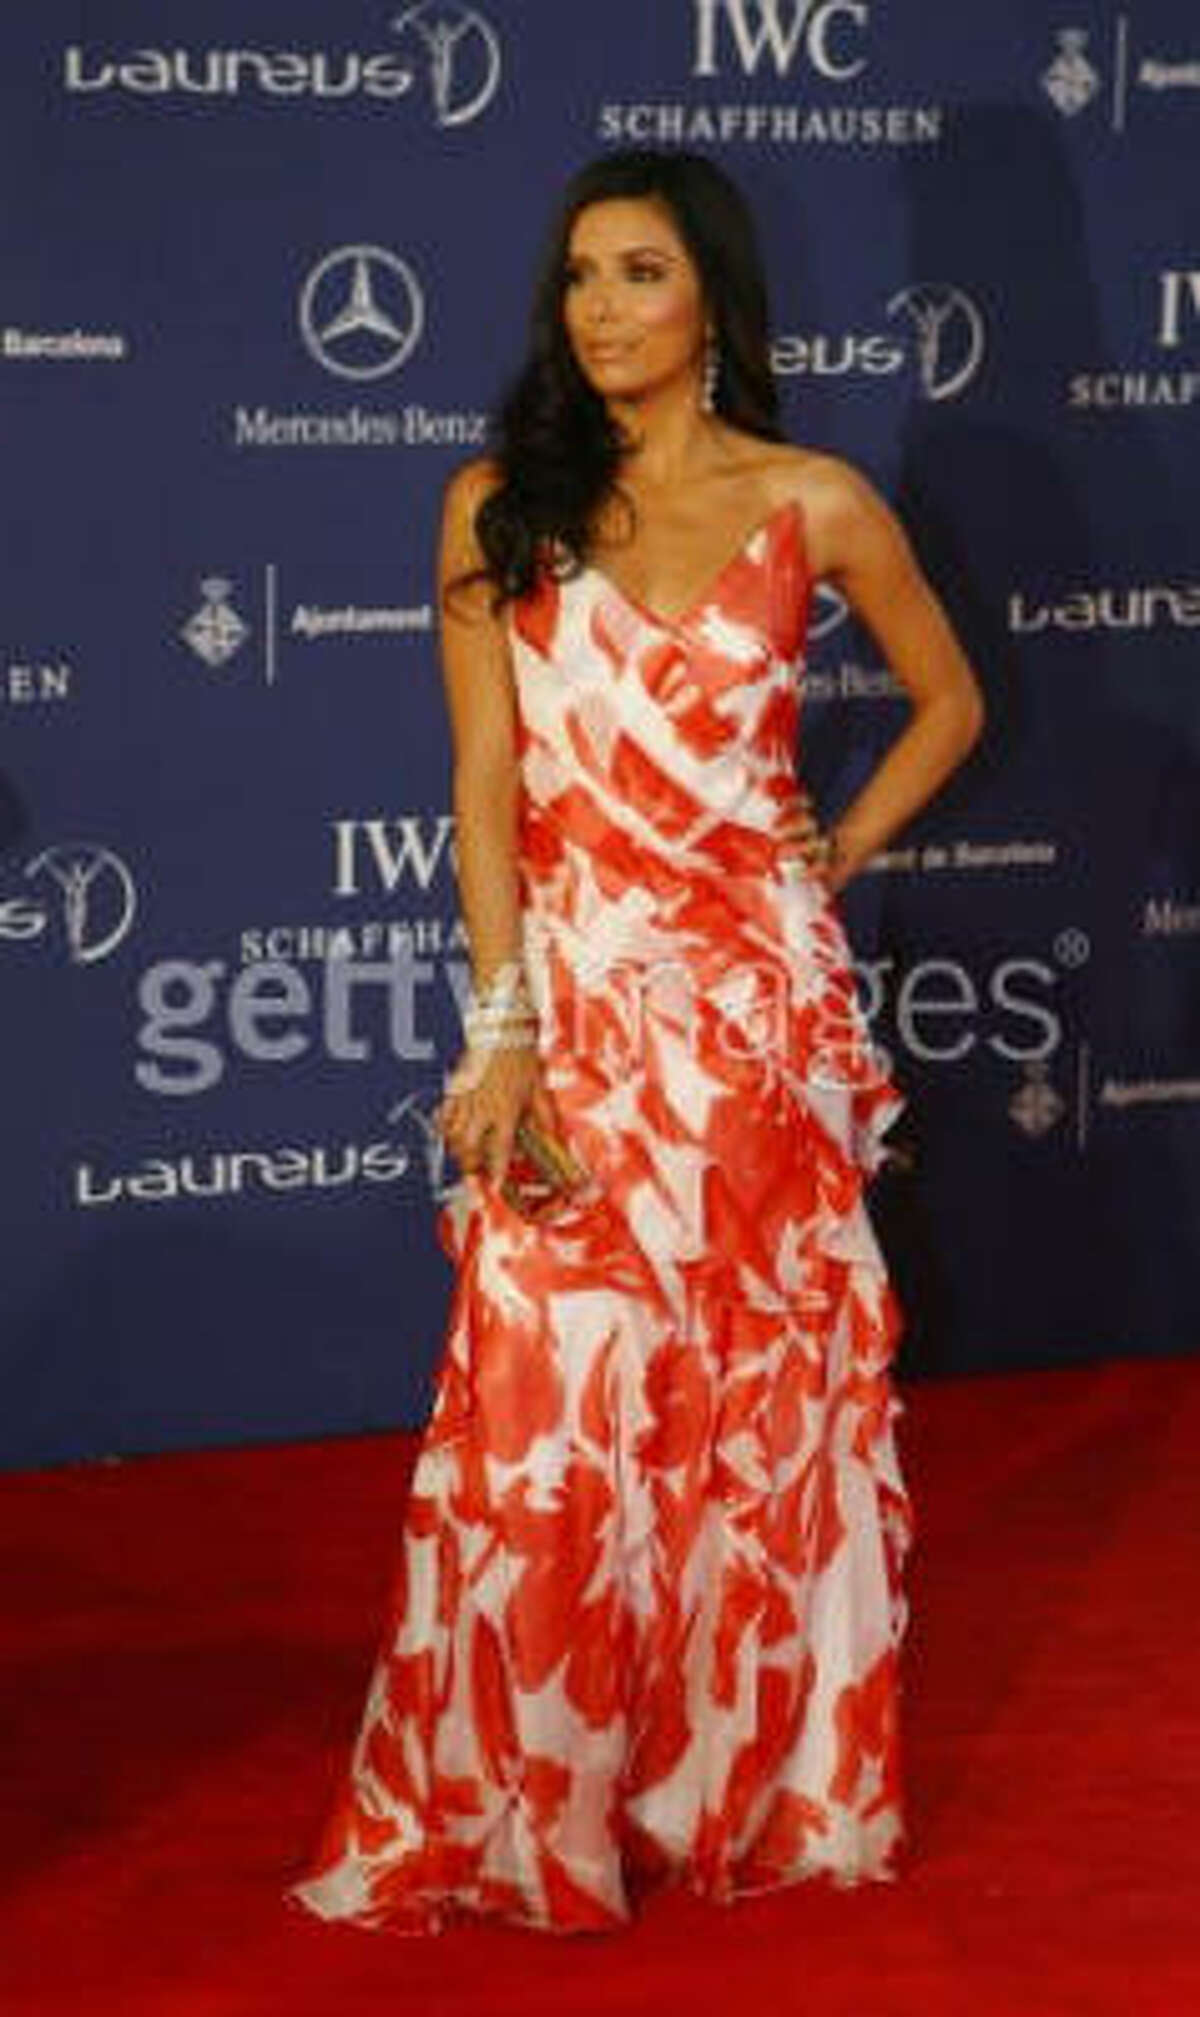 Eva Longoria on the red carpet wearing Carmen Marc Valvo.